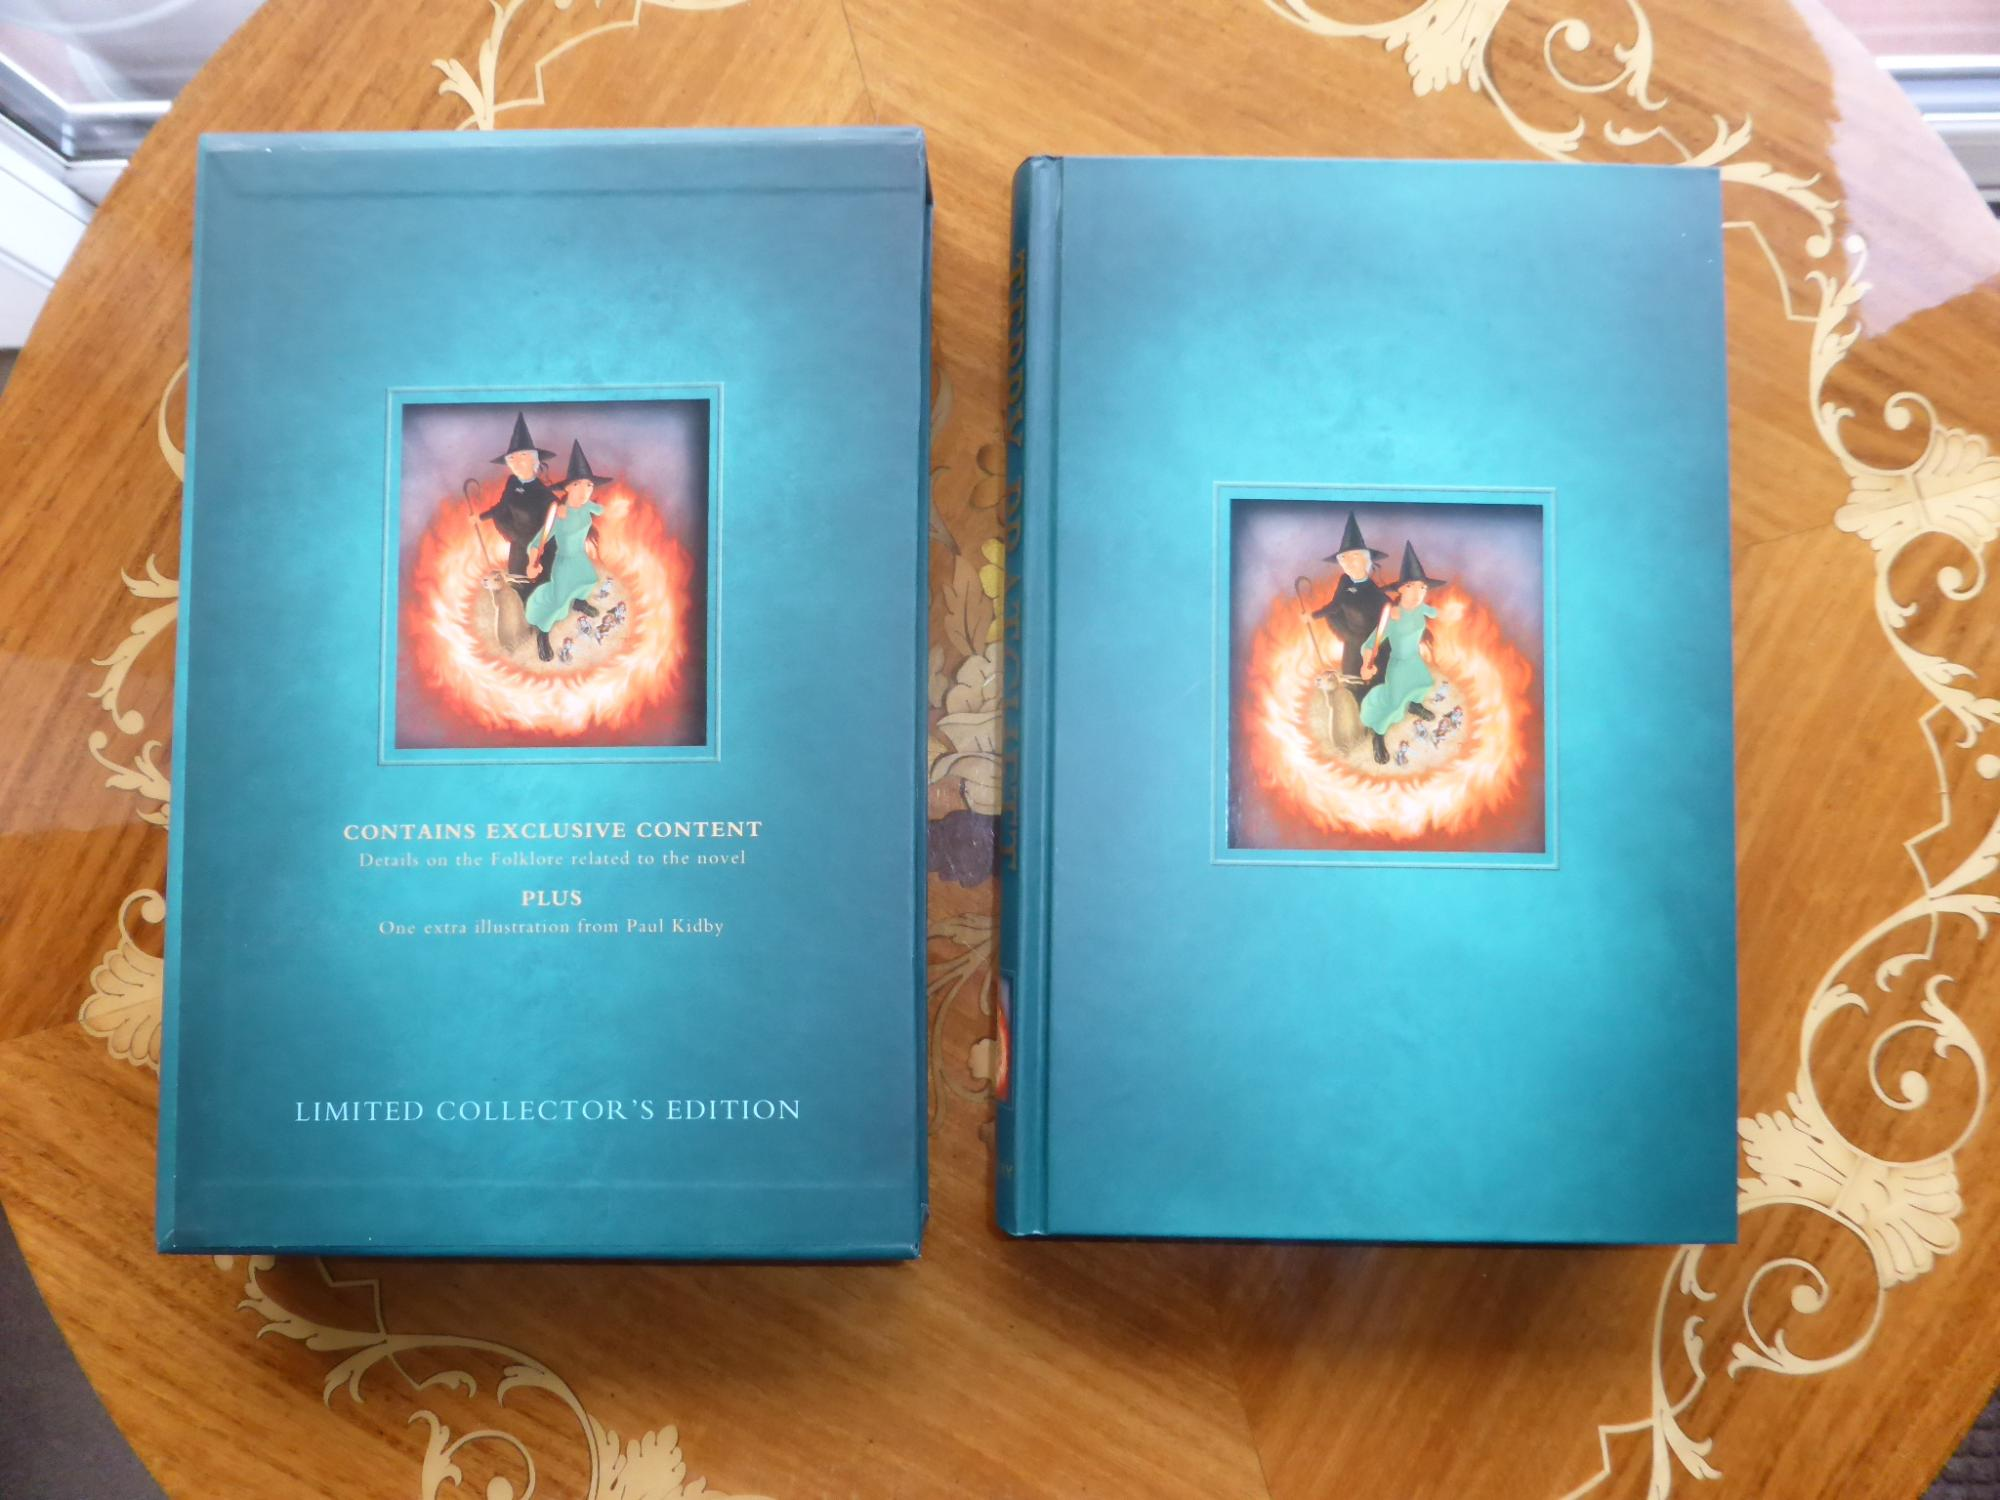 I Shall Wear Midnight: A Discworld Novel AS NEW SIGNED & STAMPED with HOLOGRAM in EXCLUSIVE SLIPCASED LIMITED EDITION - Pratchett, Terry